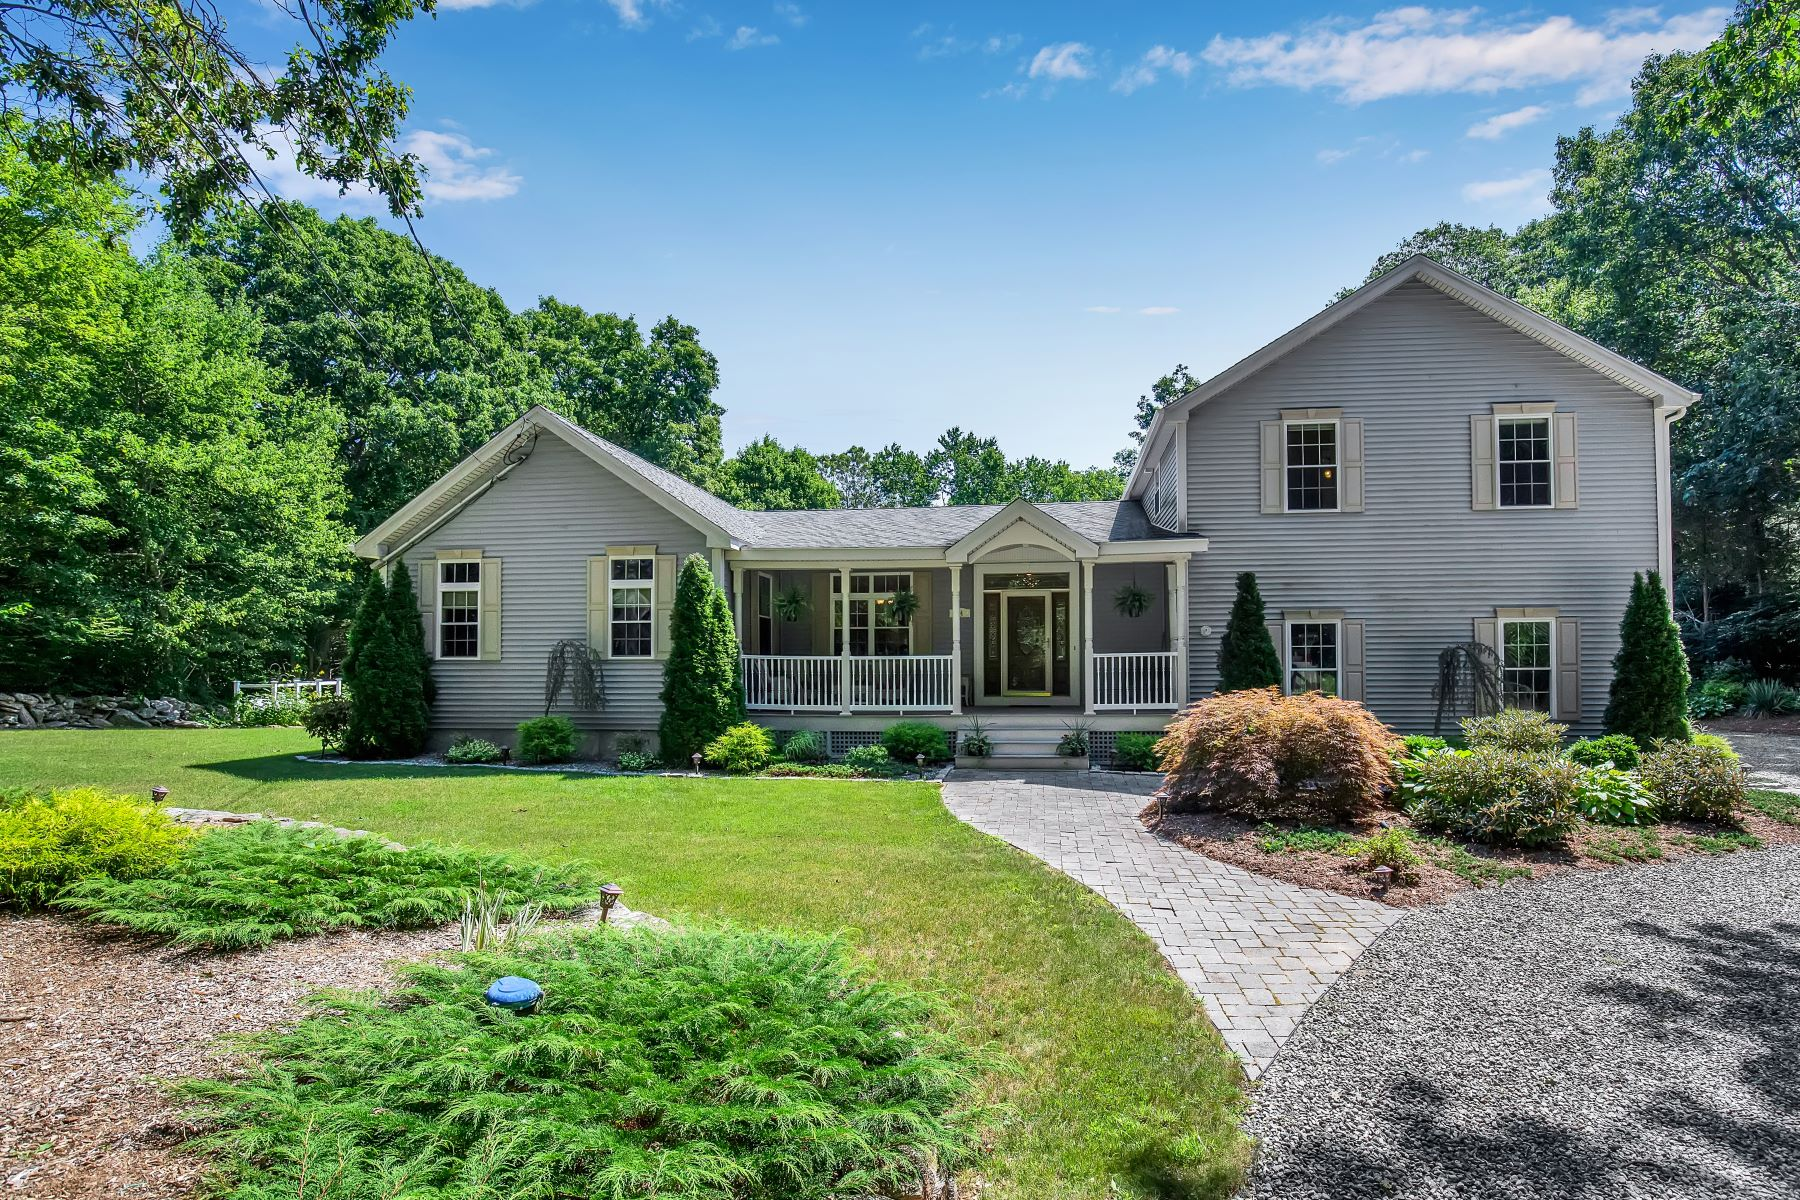 Single Family Homes for Sale at 94 Long Hill Road Clinton, Connecticut 06413 United States